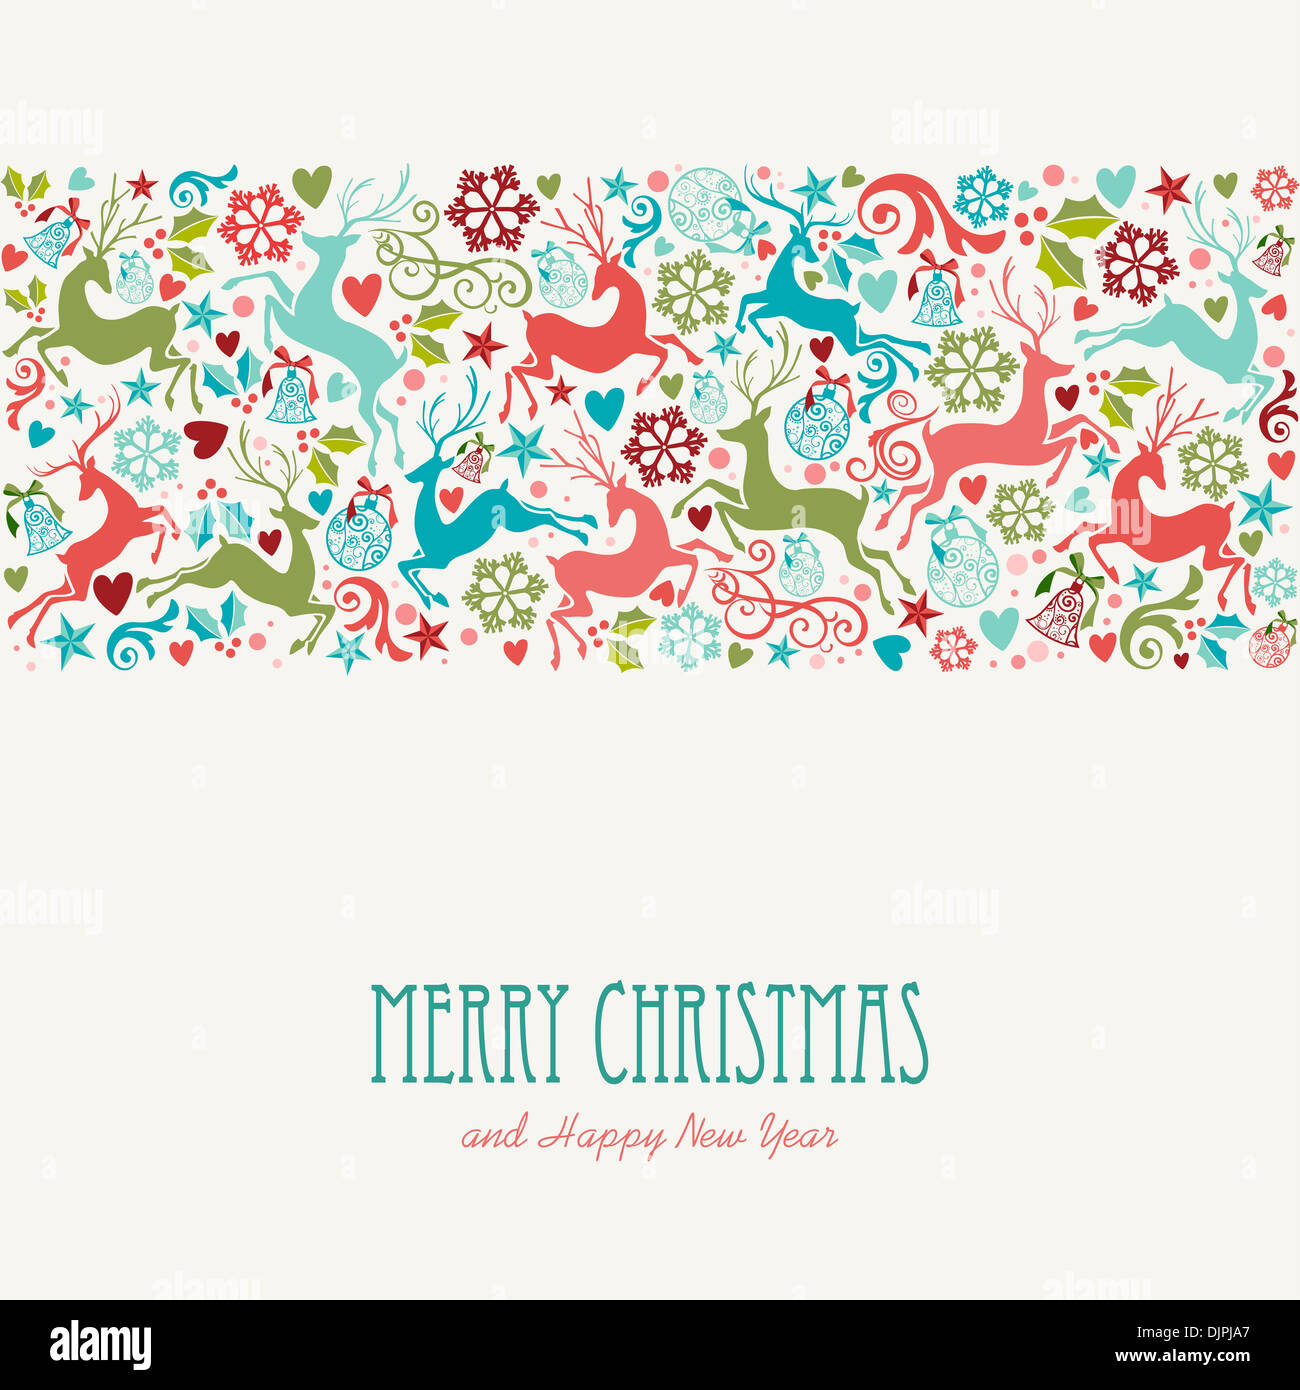 Merry Christmas and Happy New Year greeting card background. EPS10 ...